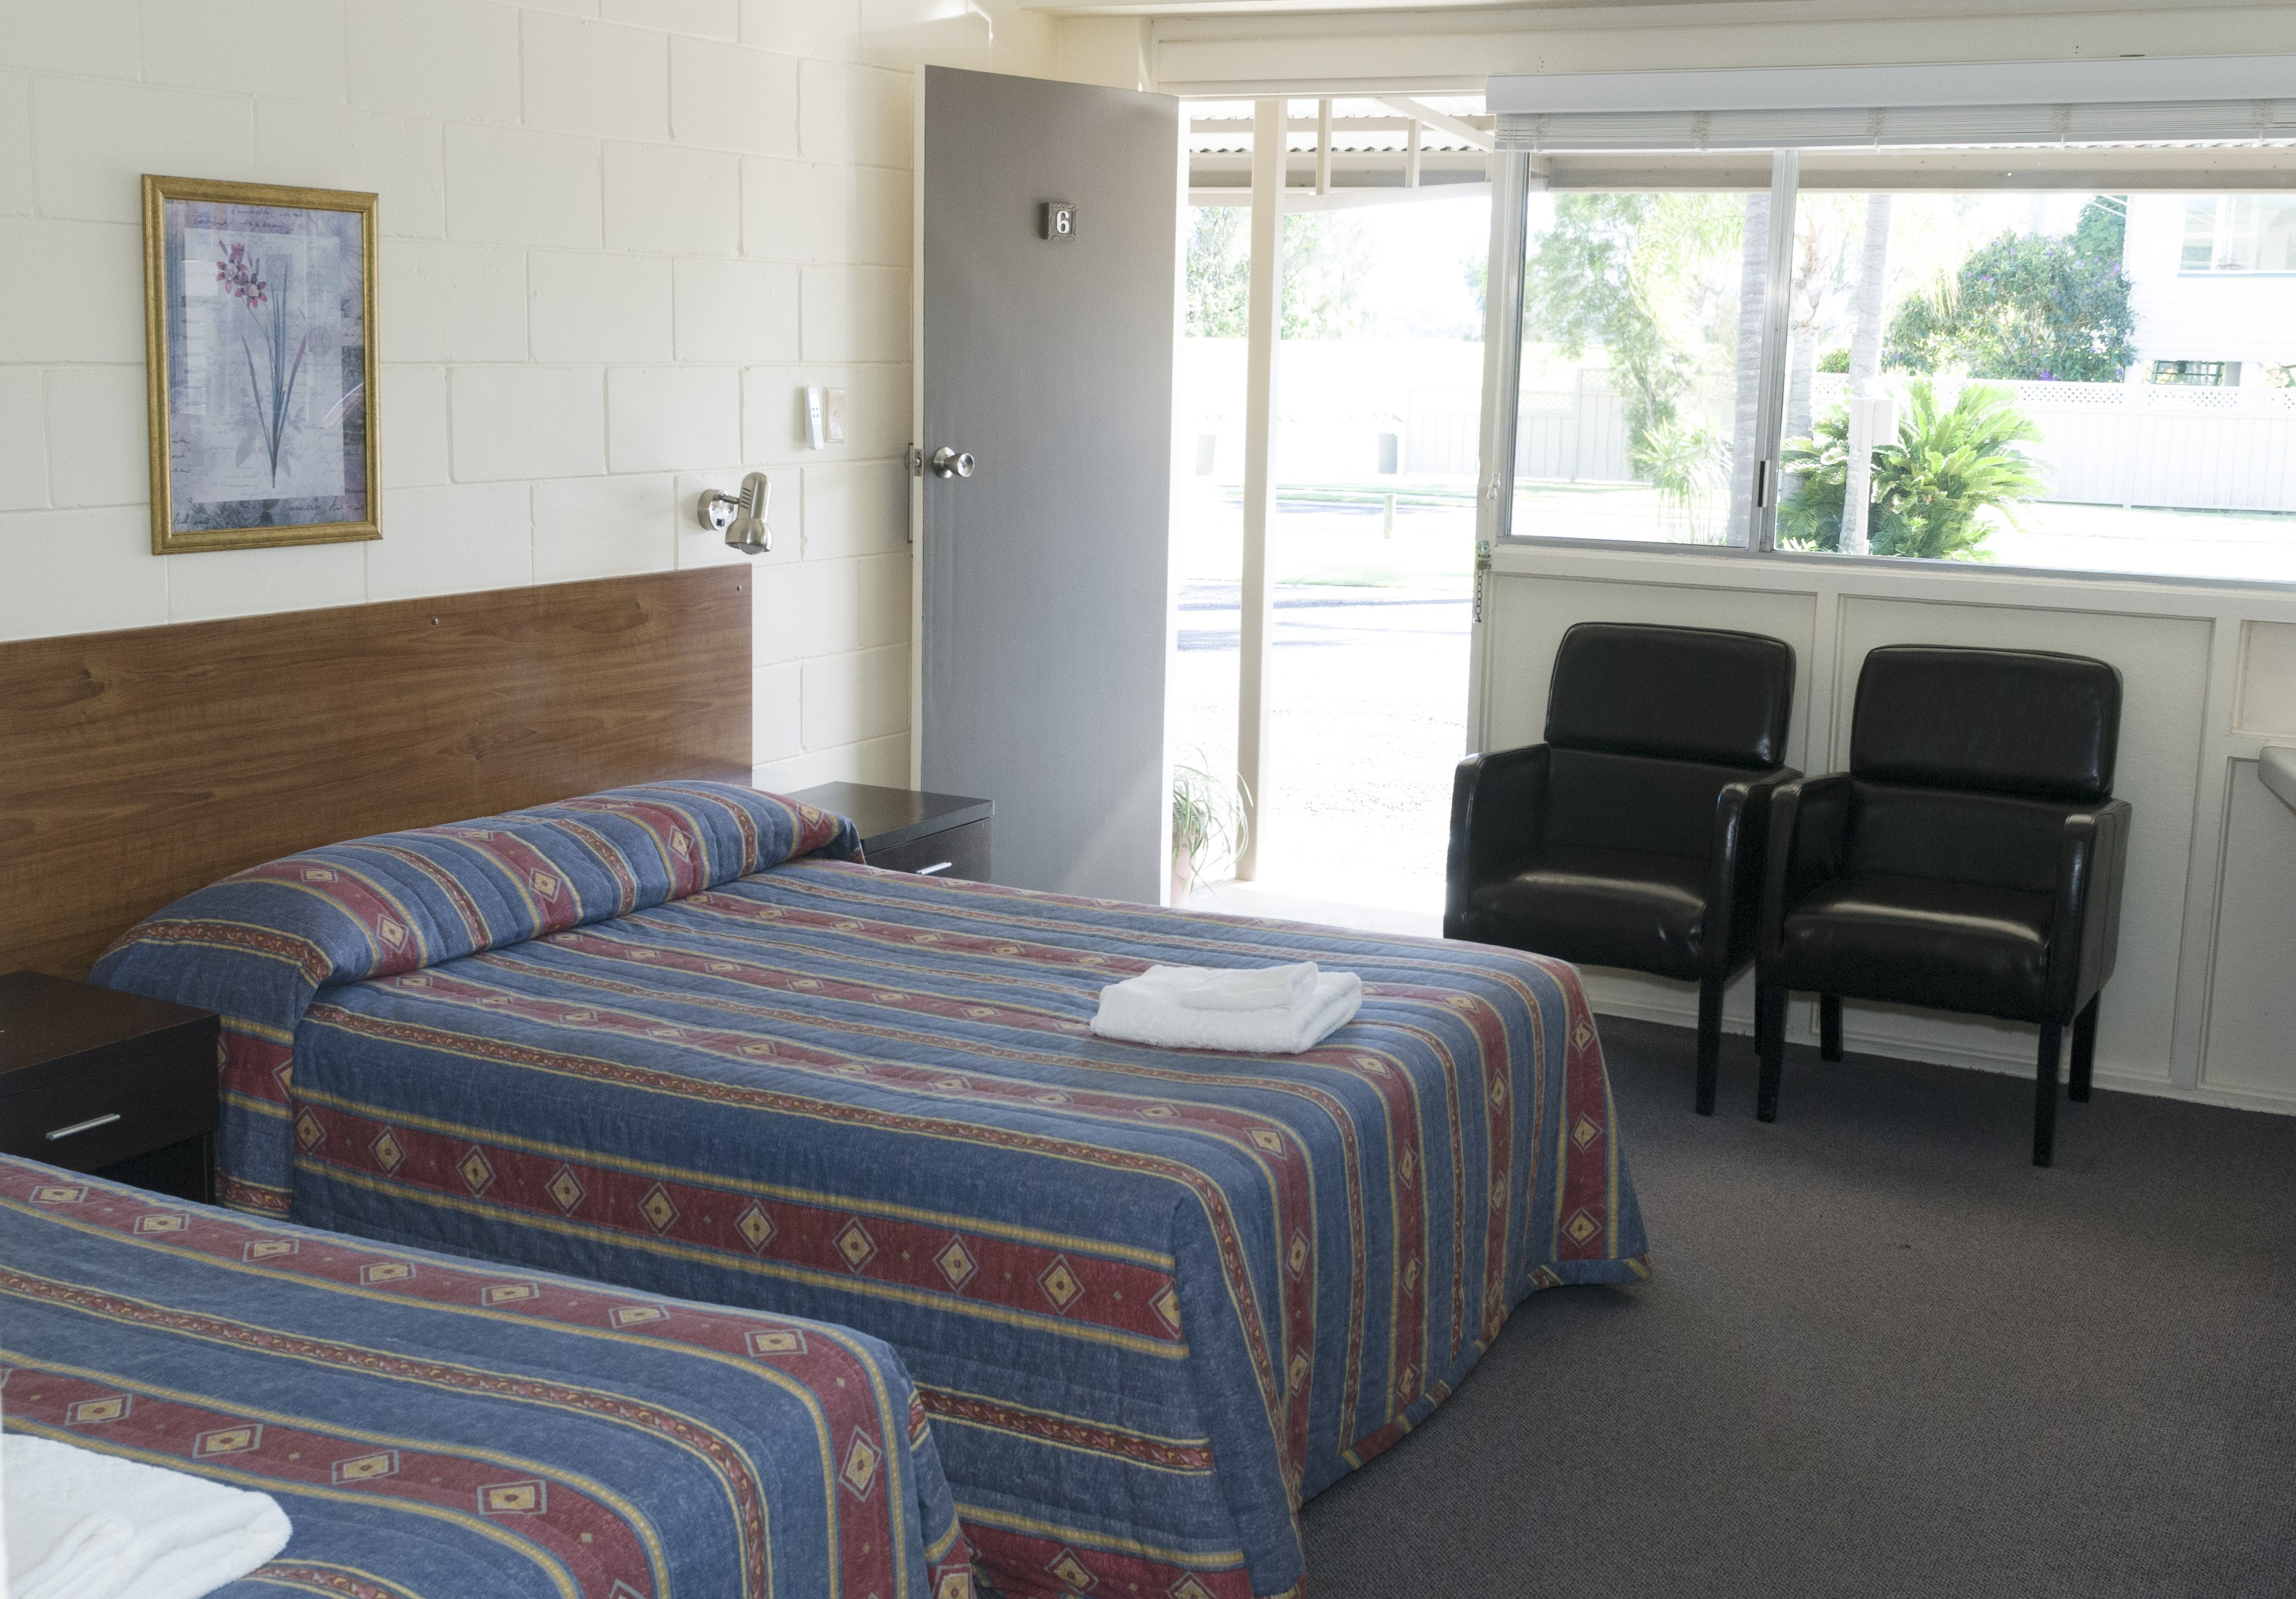 Waterview Motel - Maclean - Accommodation Resorts